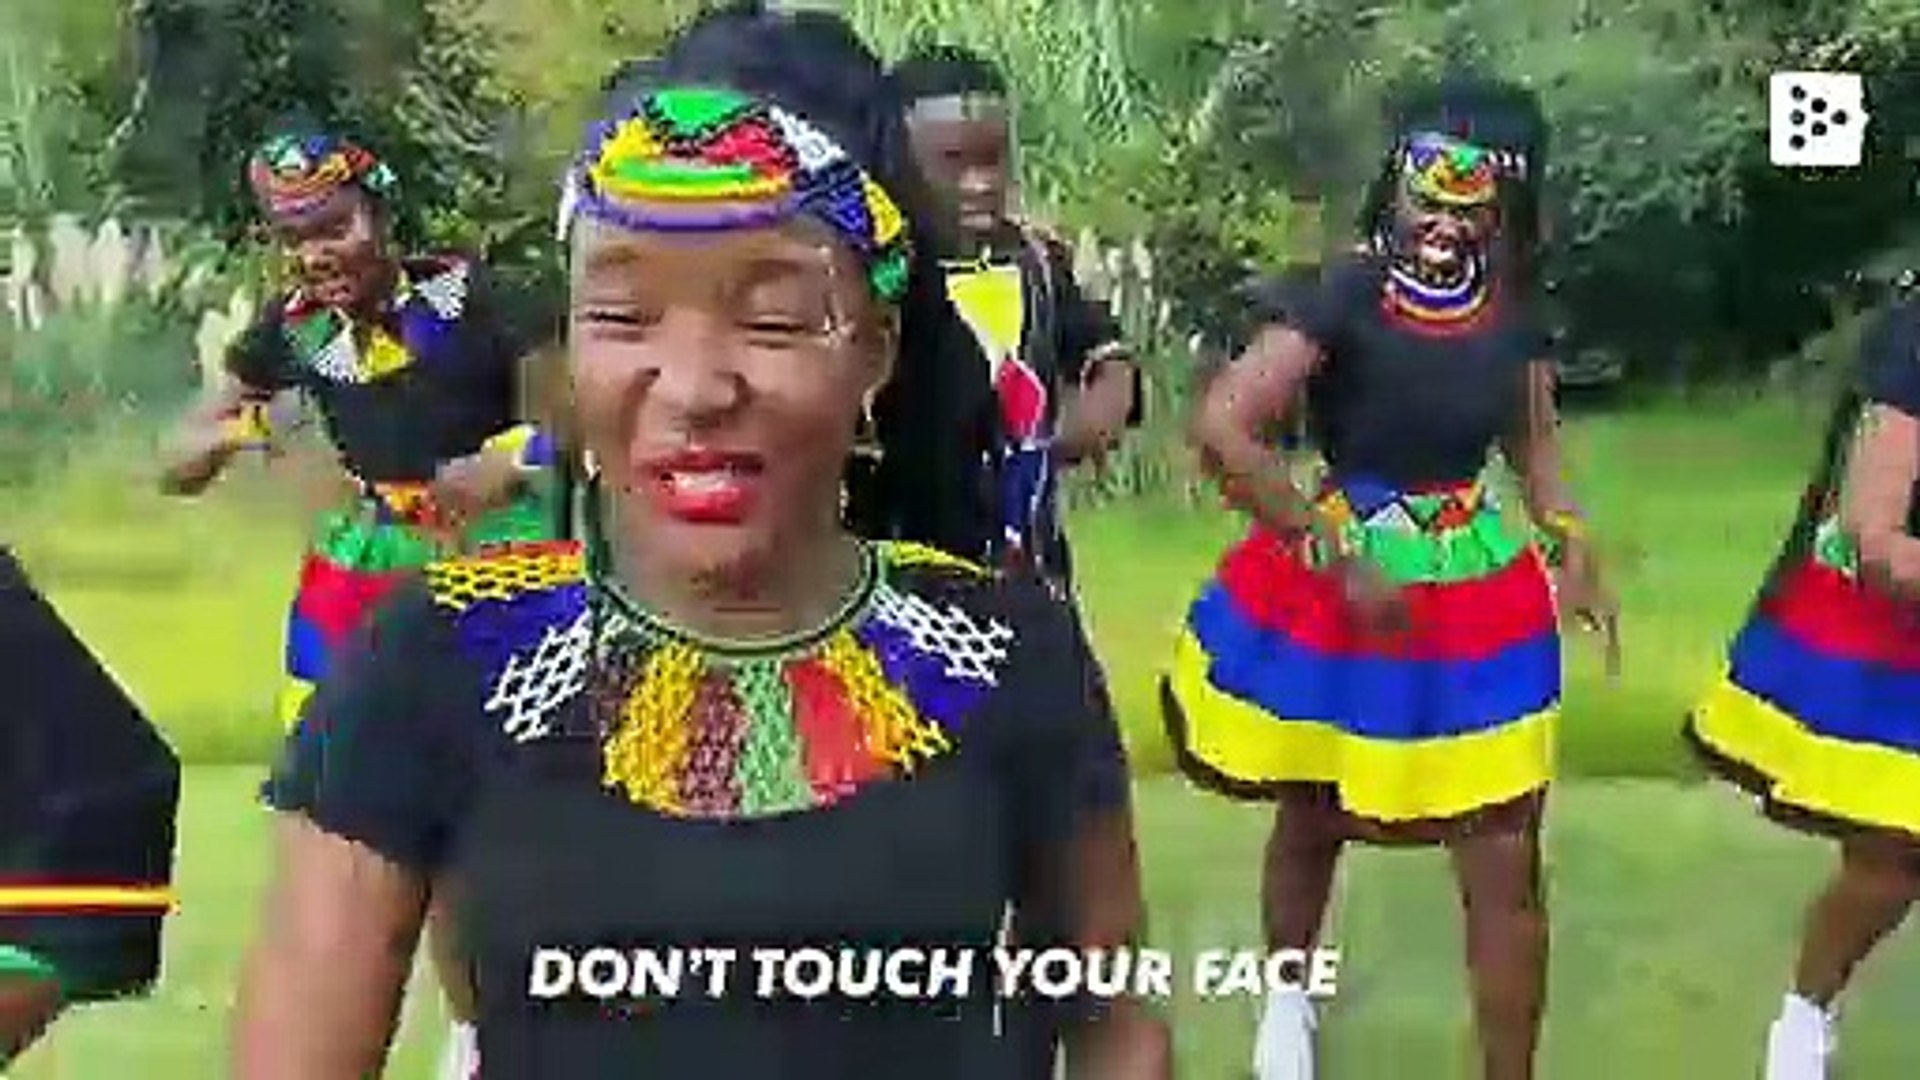 'Wash your hands' the African song to encourage people to maintain hygiene